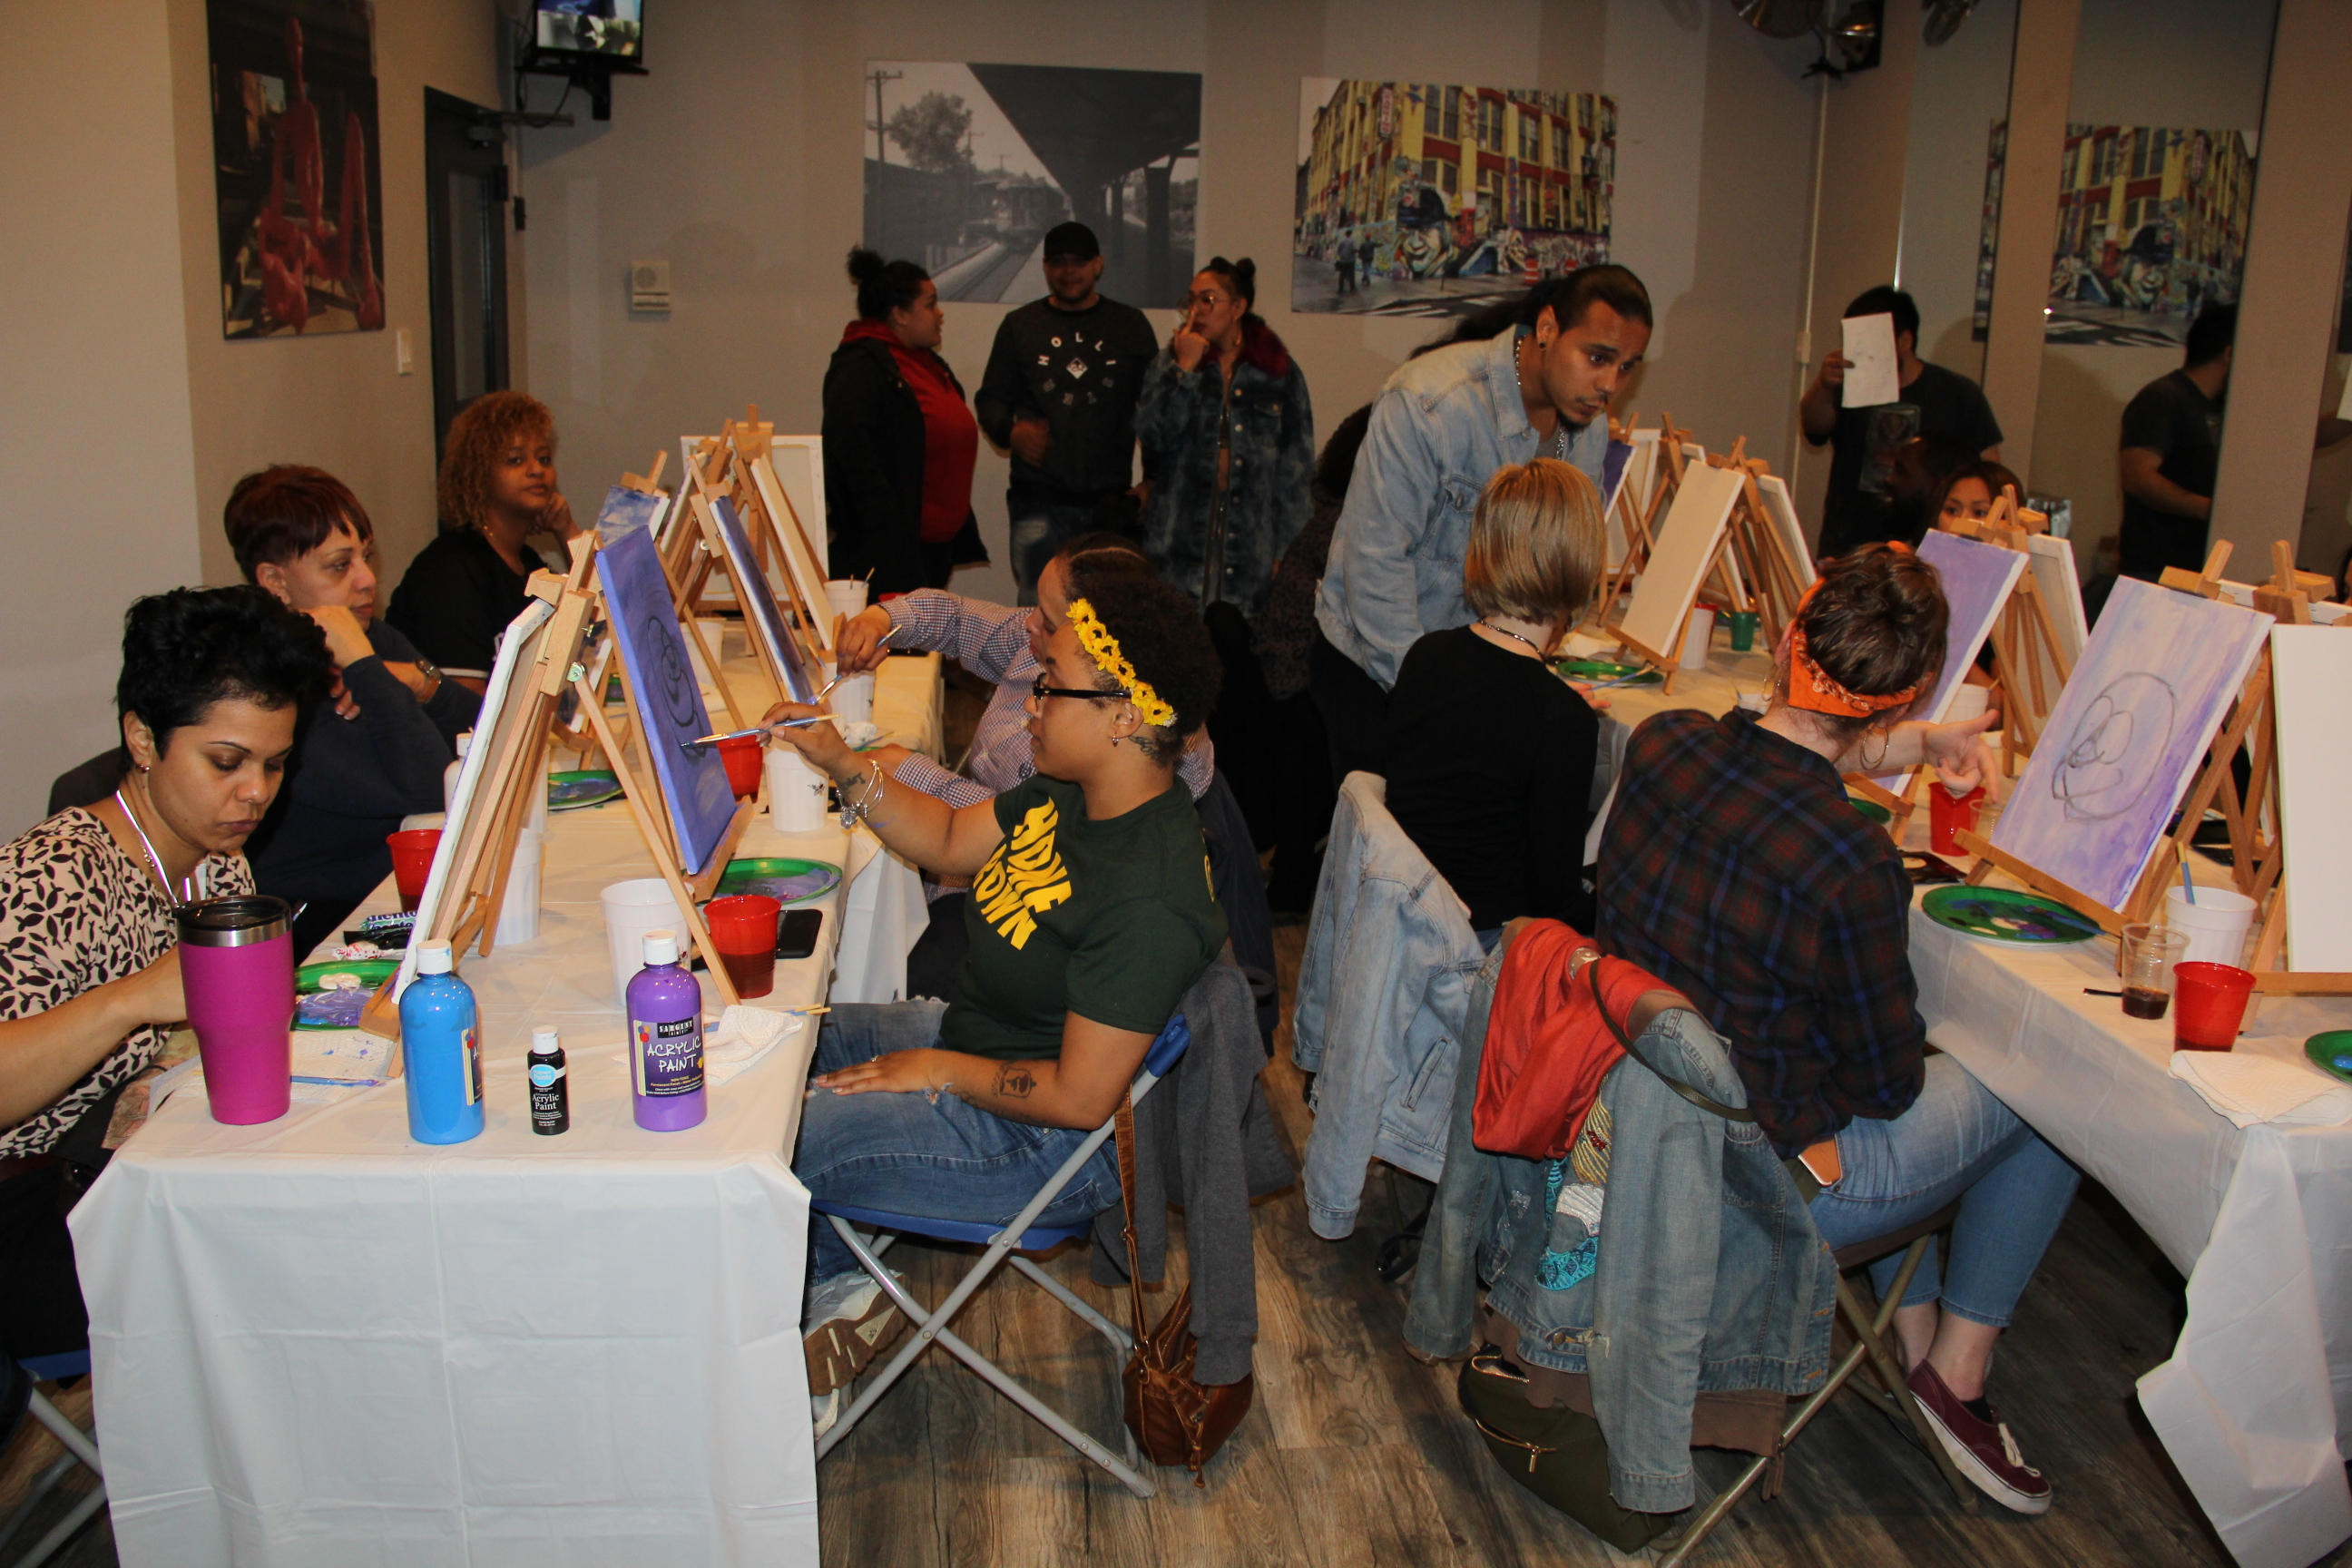 Photo #5 39th Avenue Arts N Events at 39th Avenue Arts N Events